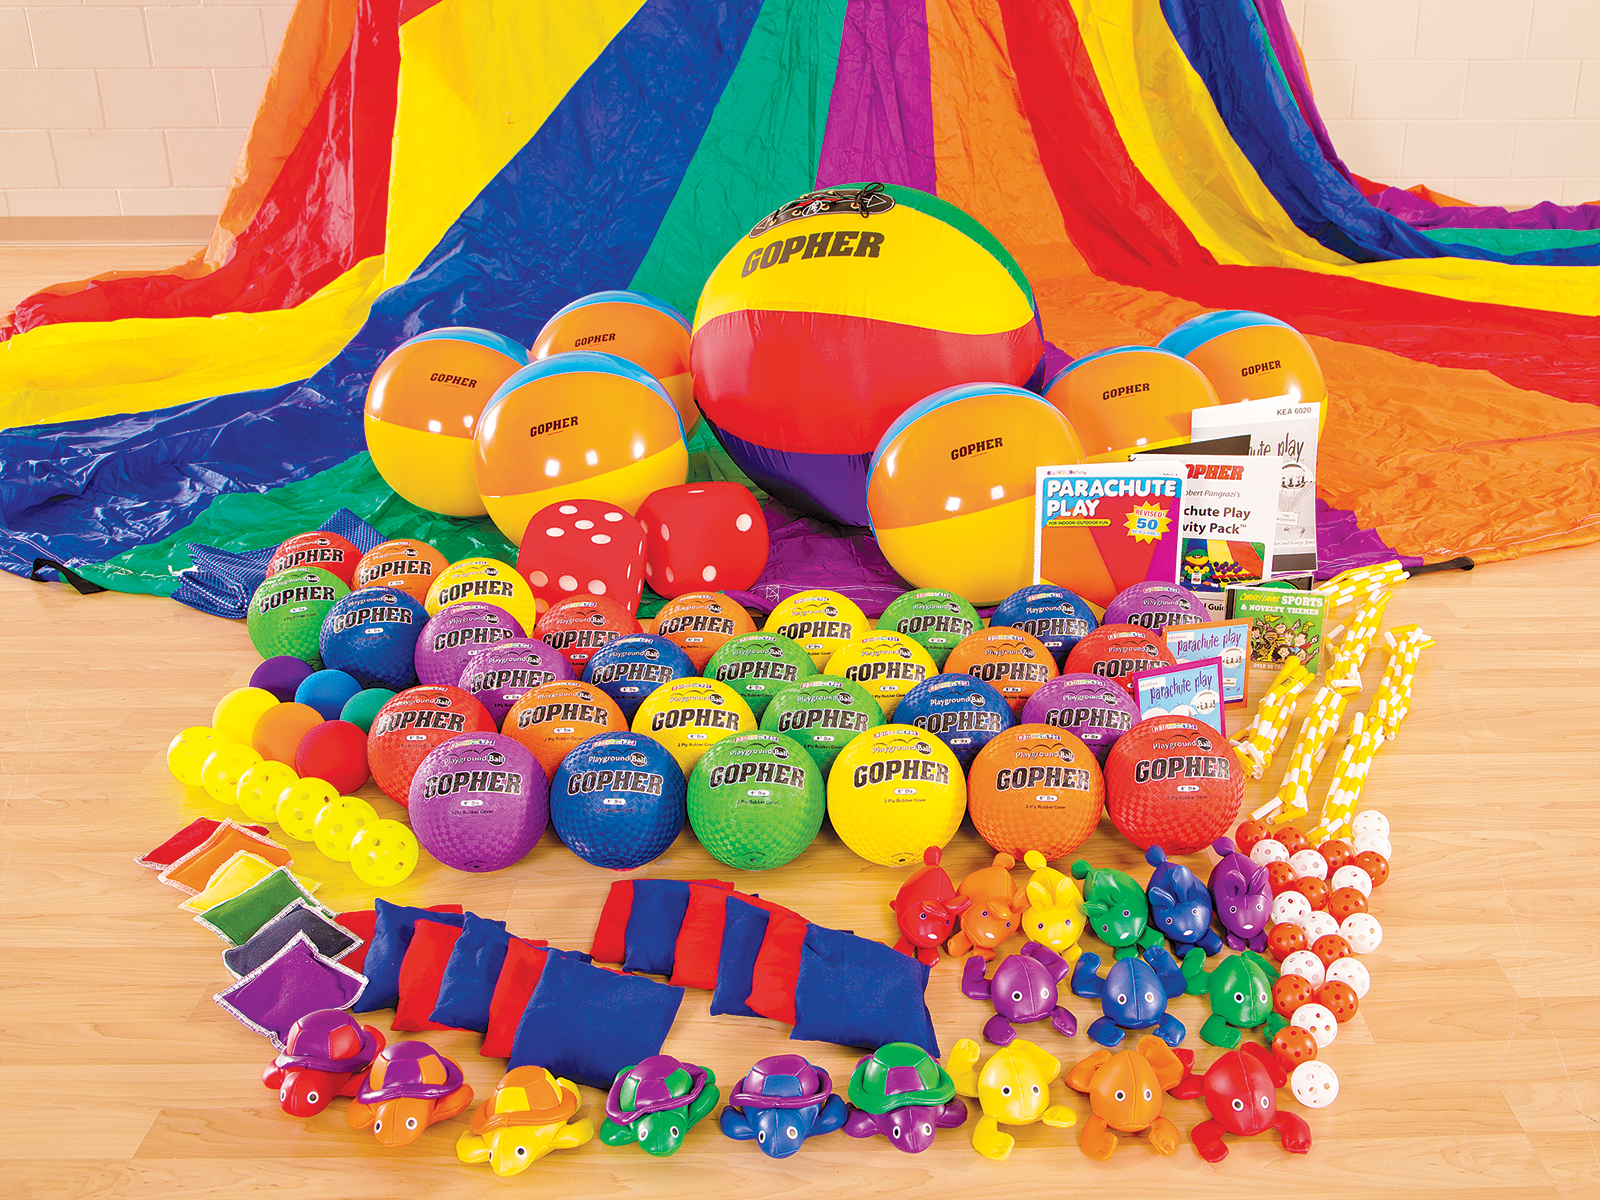 Equipment for elementary parachute activities